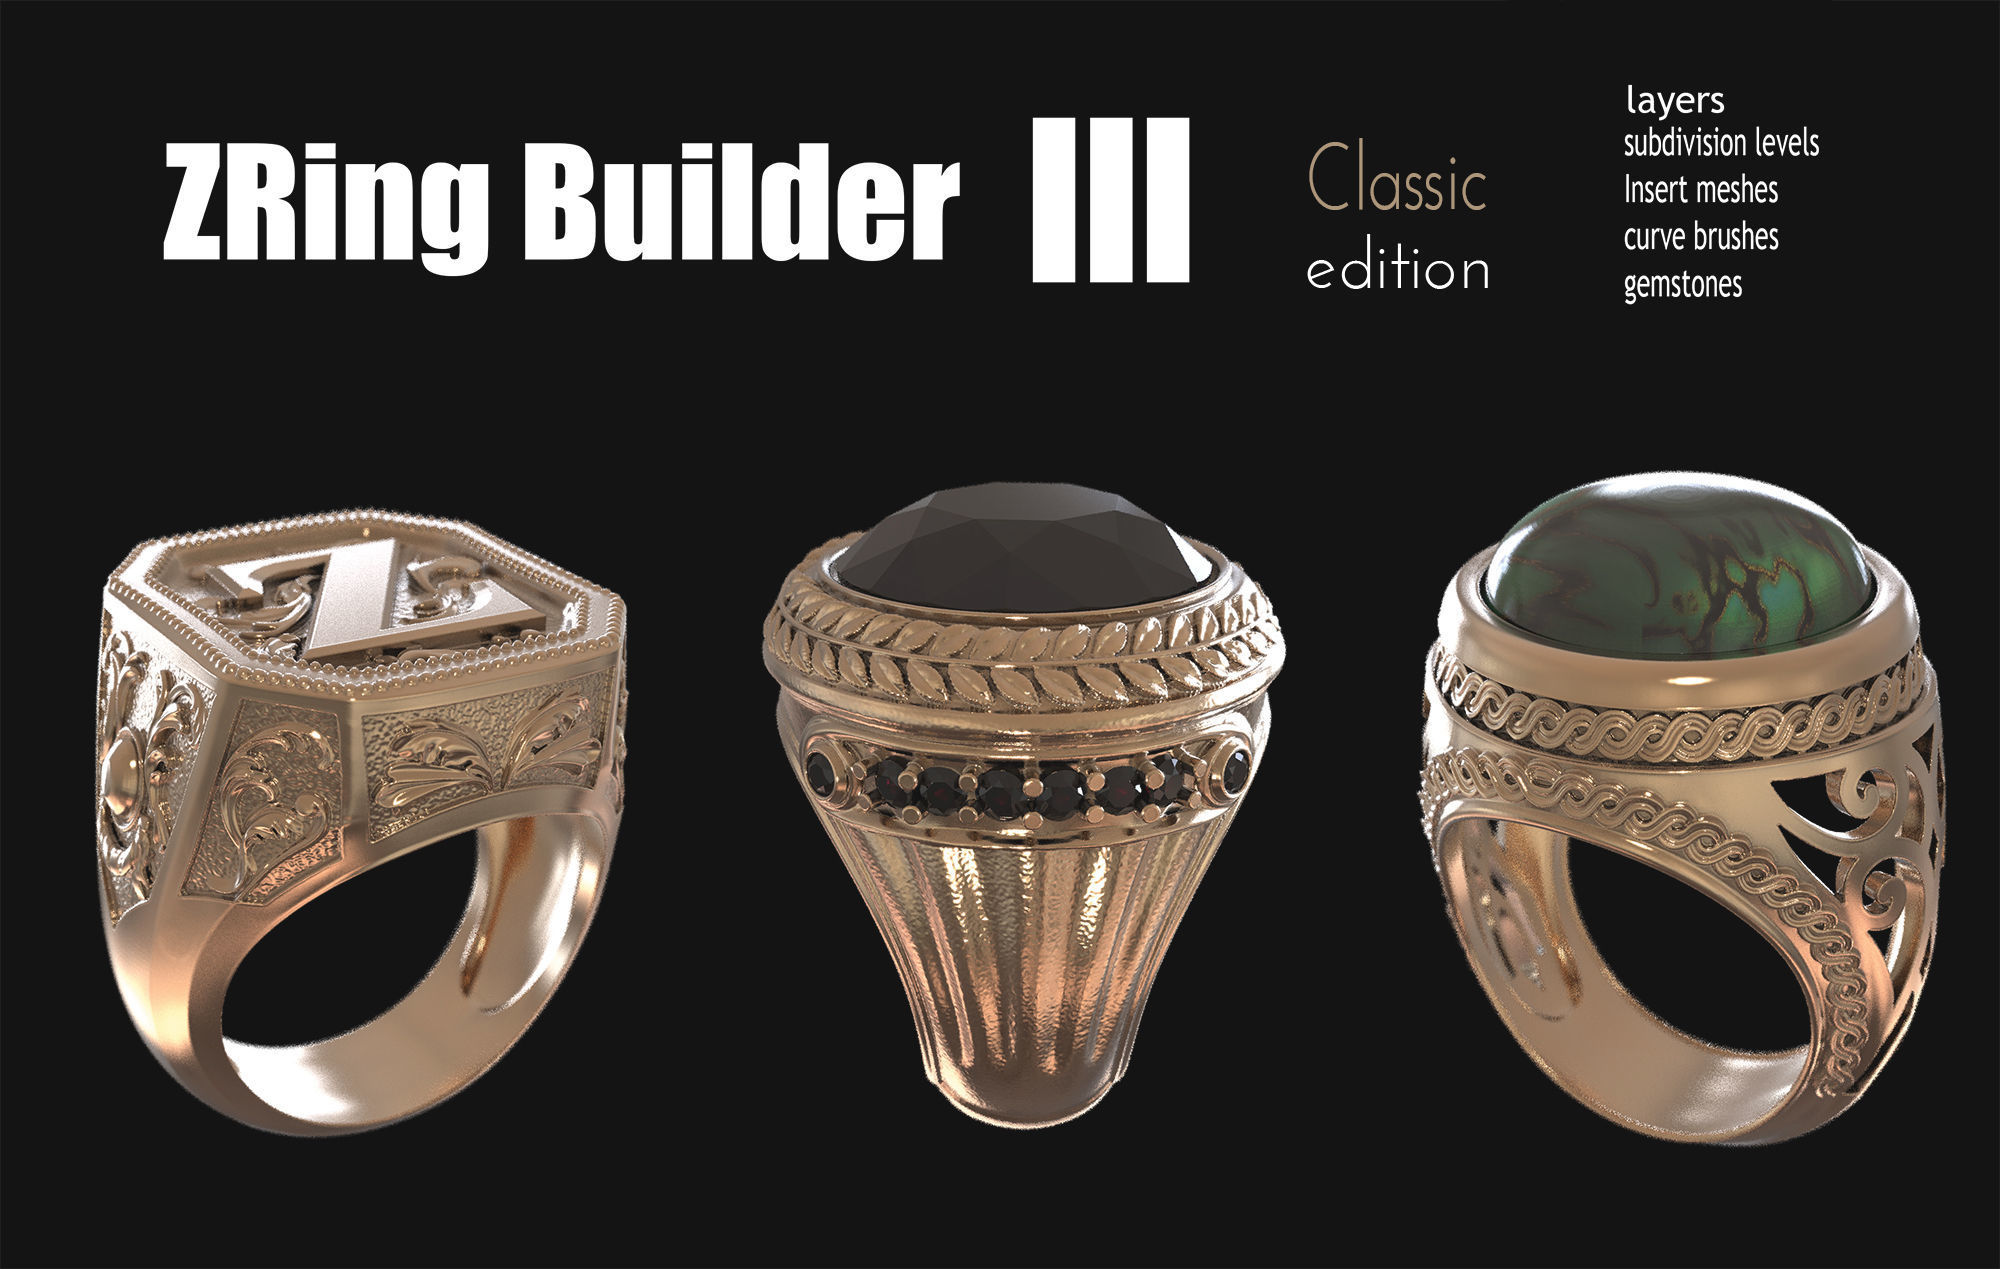 Zbrush jewelry Ring builder 3 classic edition